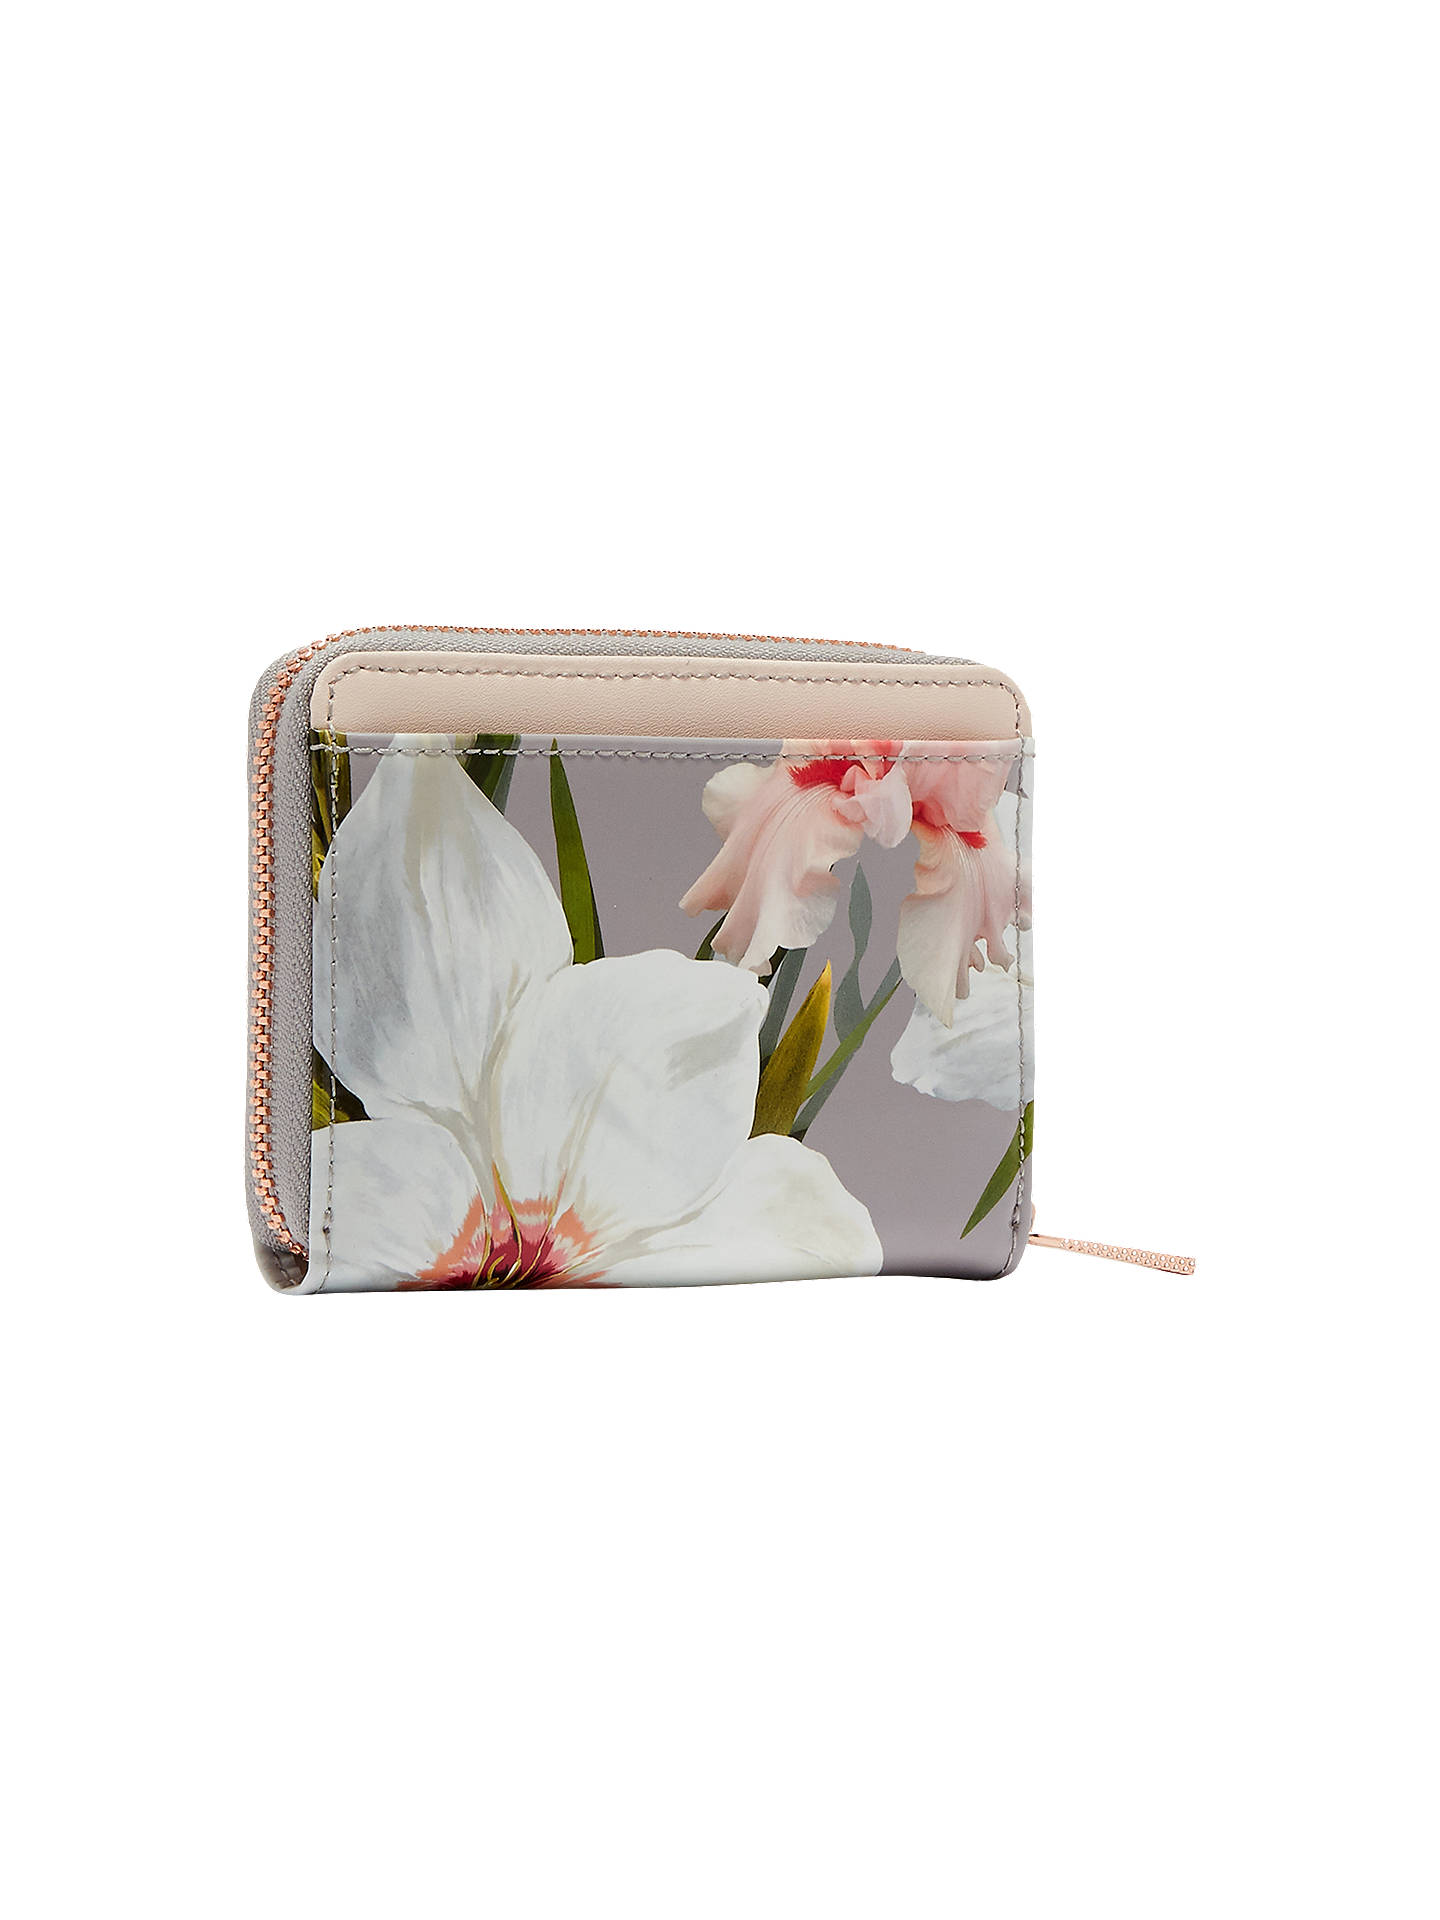 New Ted Baker Small Coin Purse /& Card Holder Chatsworth Bloom Vallie Grey